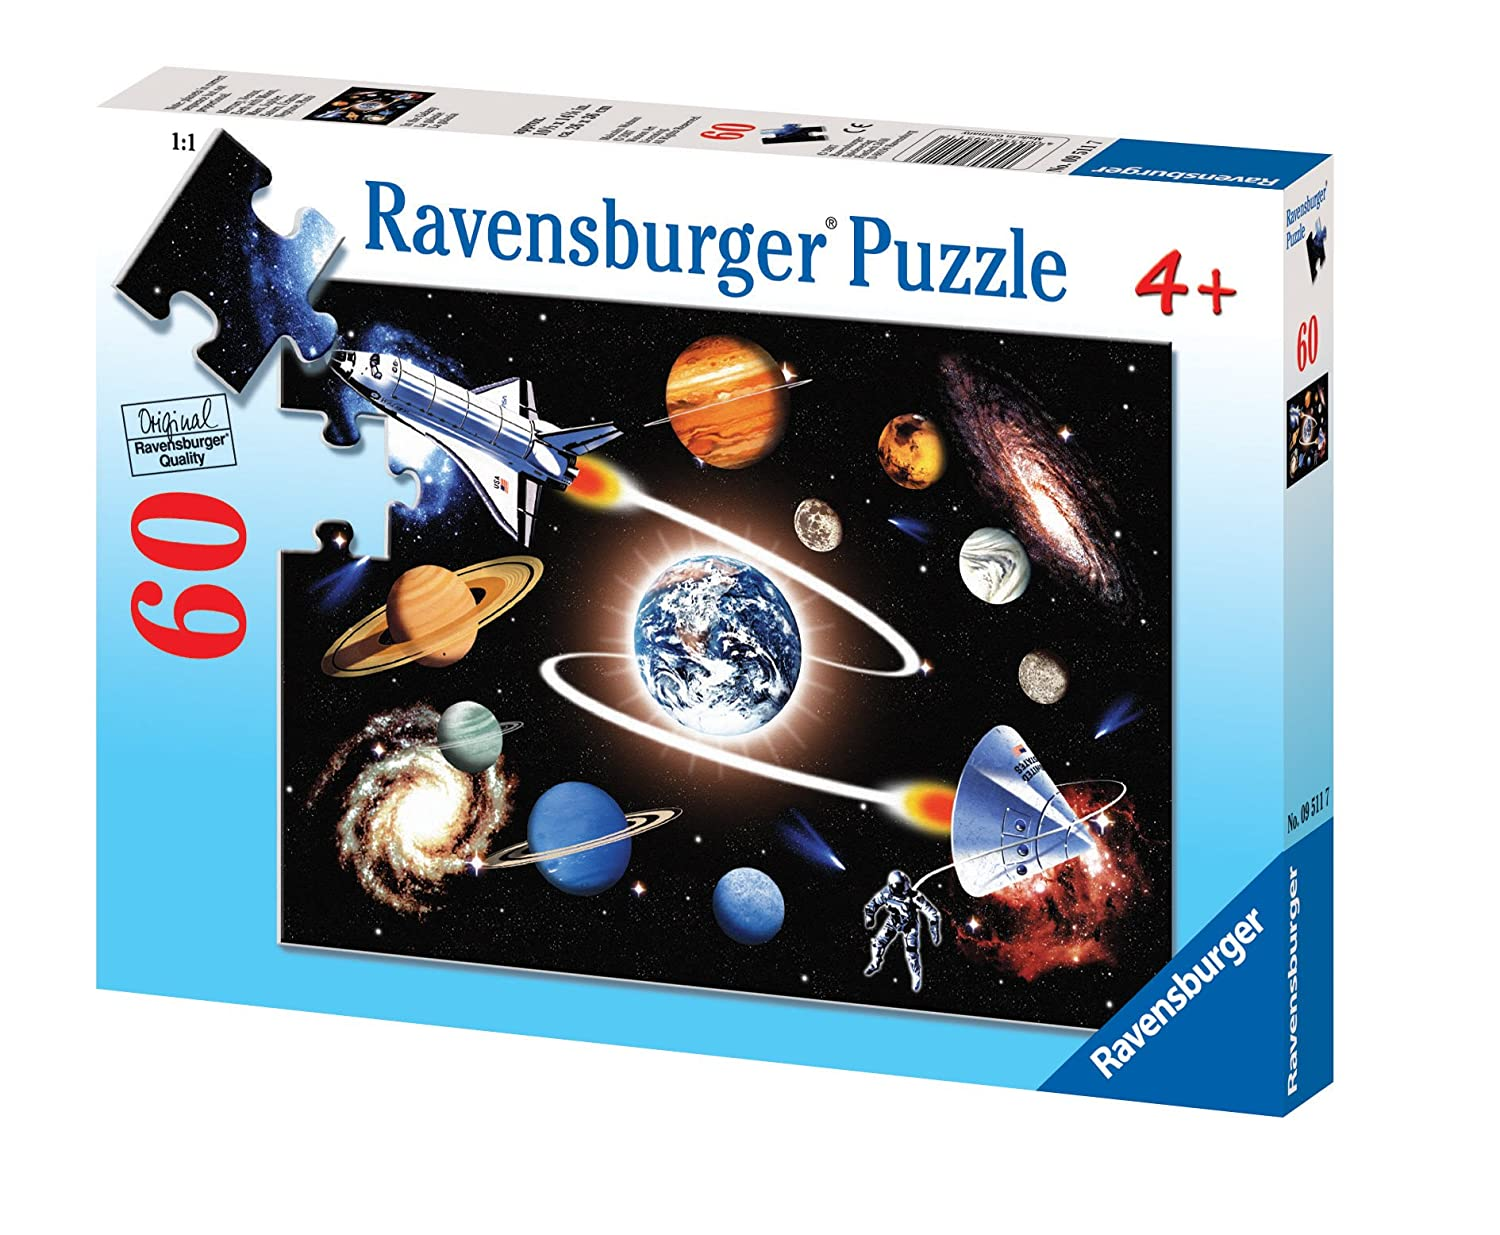 Ravensburger 09511 - In der Galaxis - 60 Teile Kinderpuzzle